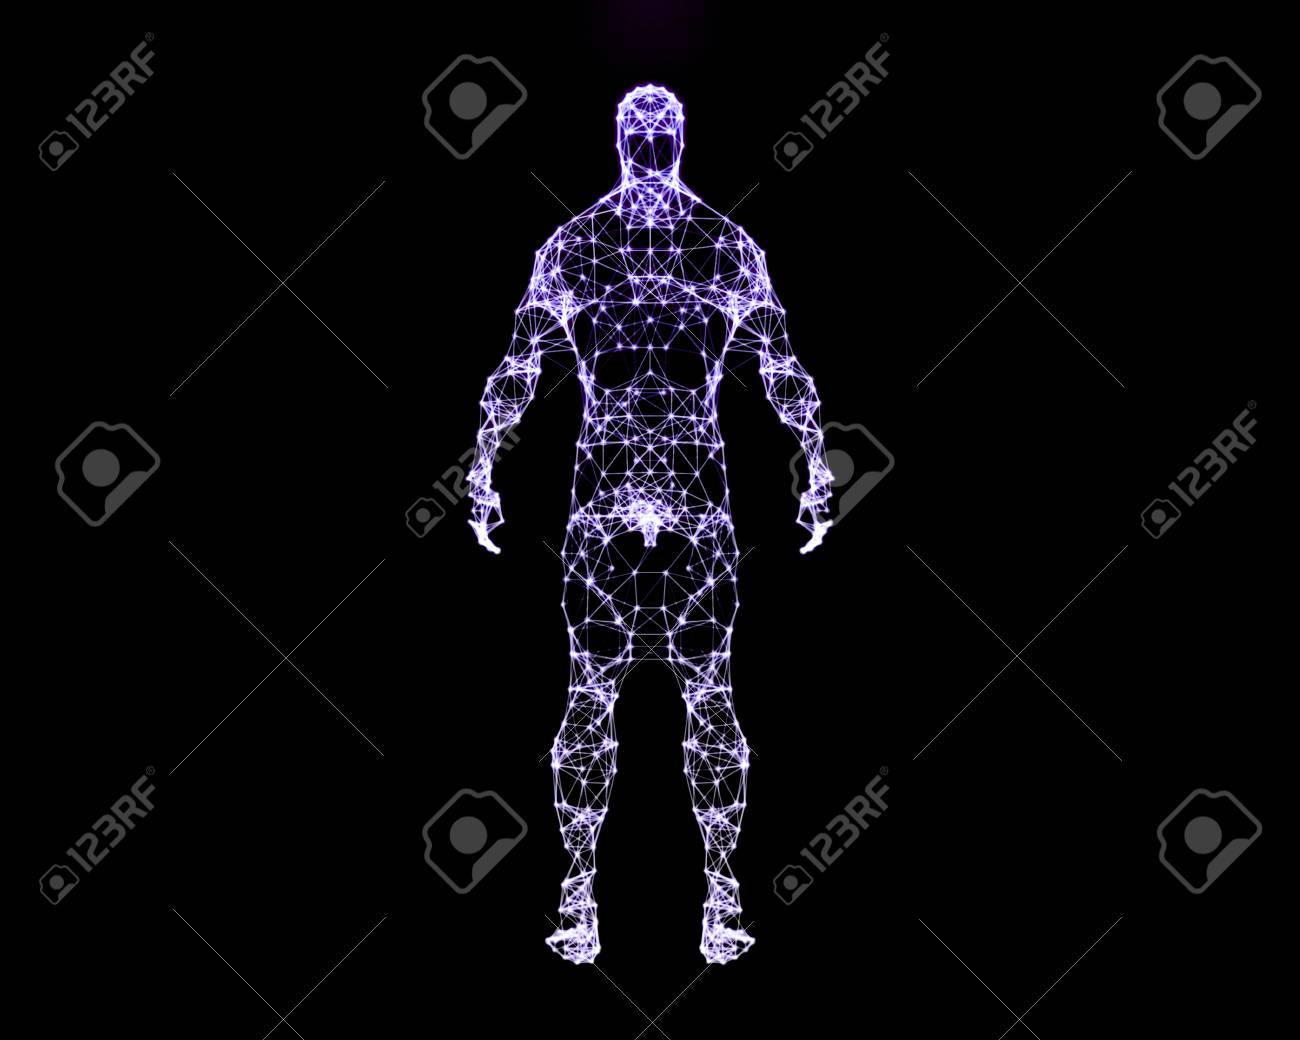 Abstract Digital Illustration Of Human Body Back View Stock Photo